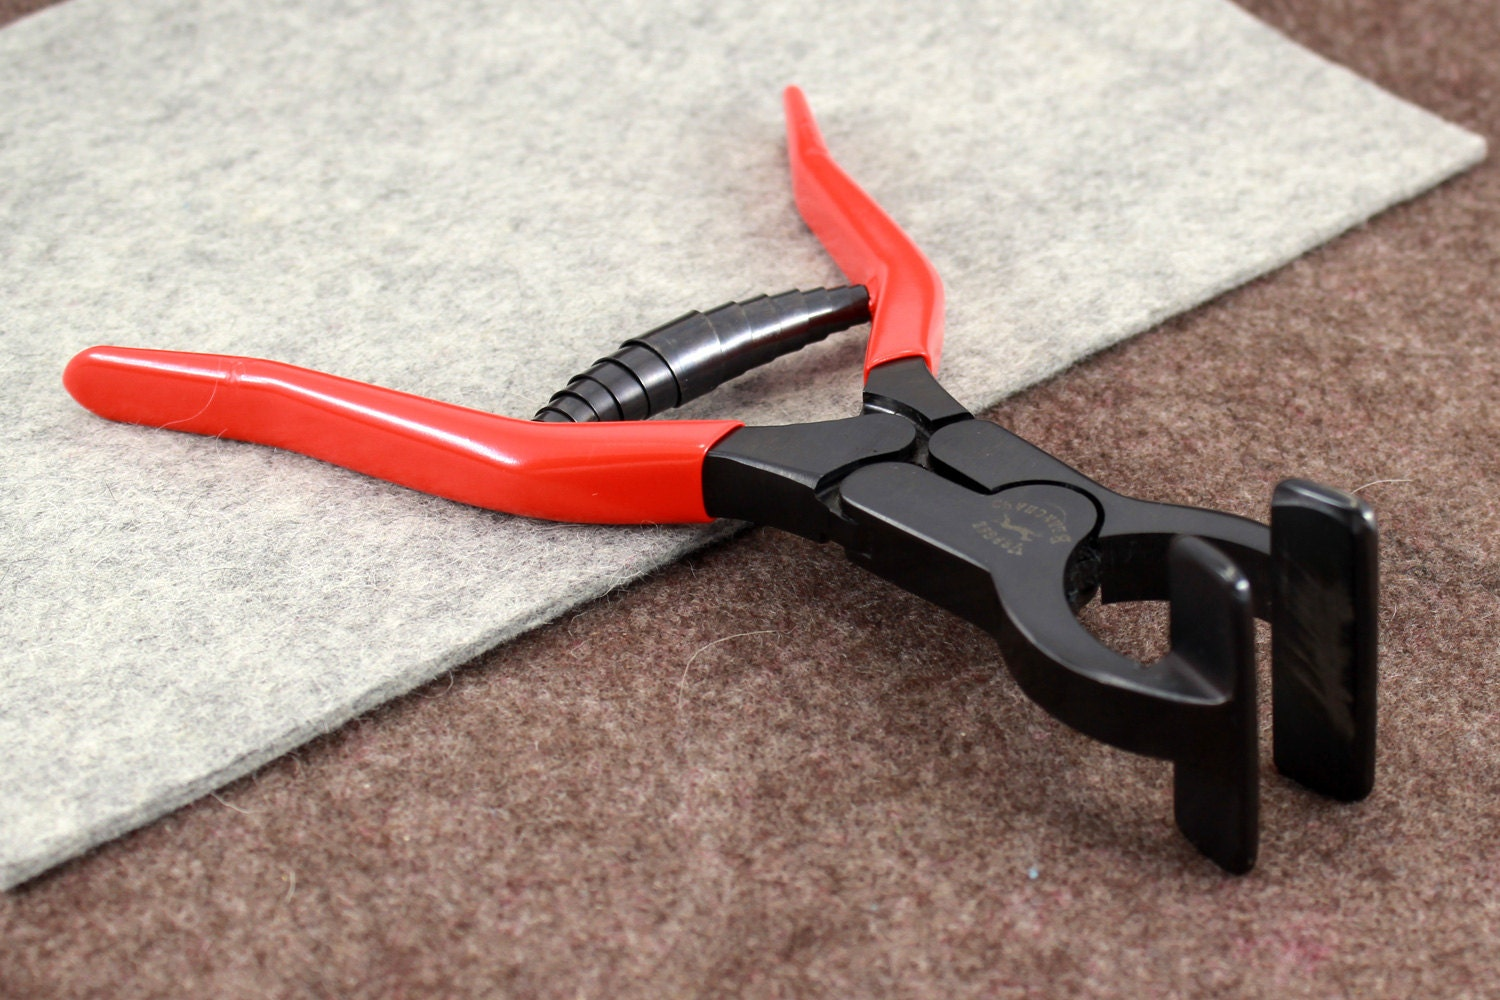 Edge Clamp Pliers Vergez Blanchard/Leather Press Tool/Glueing